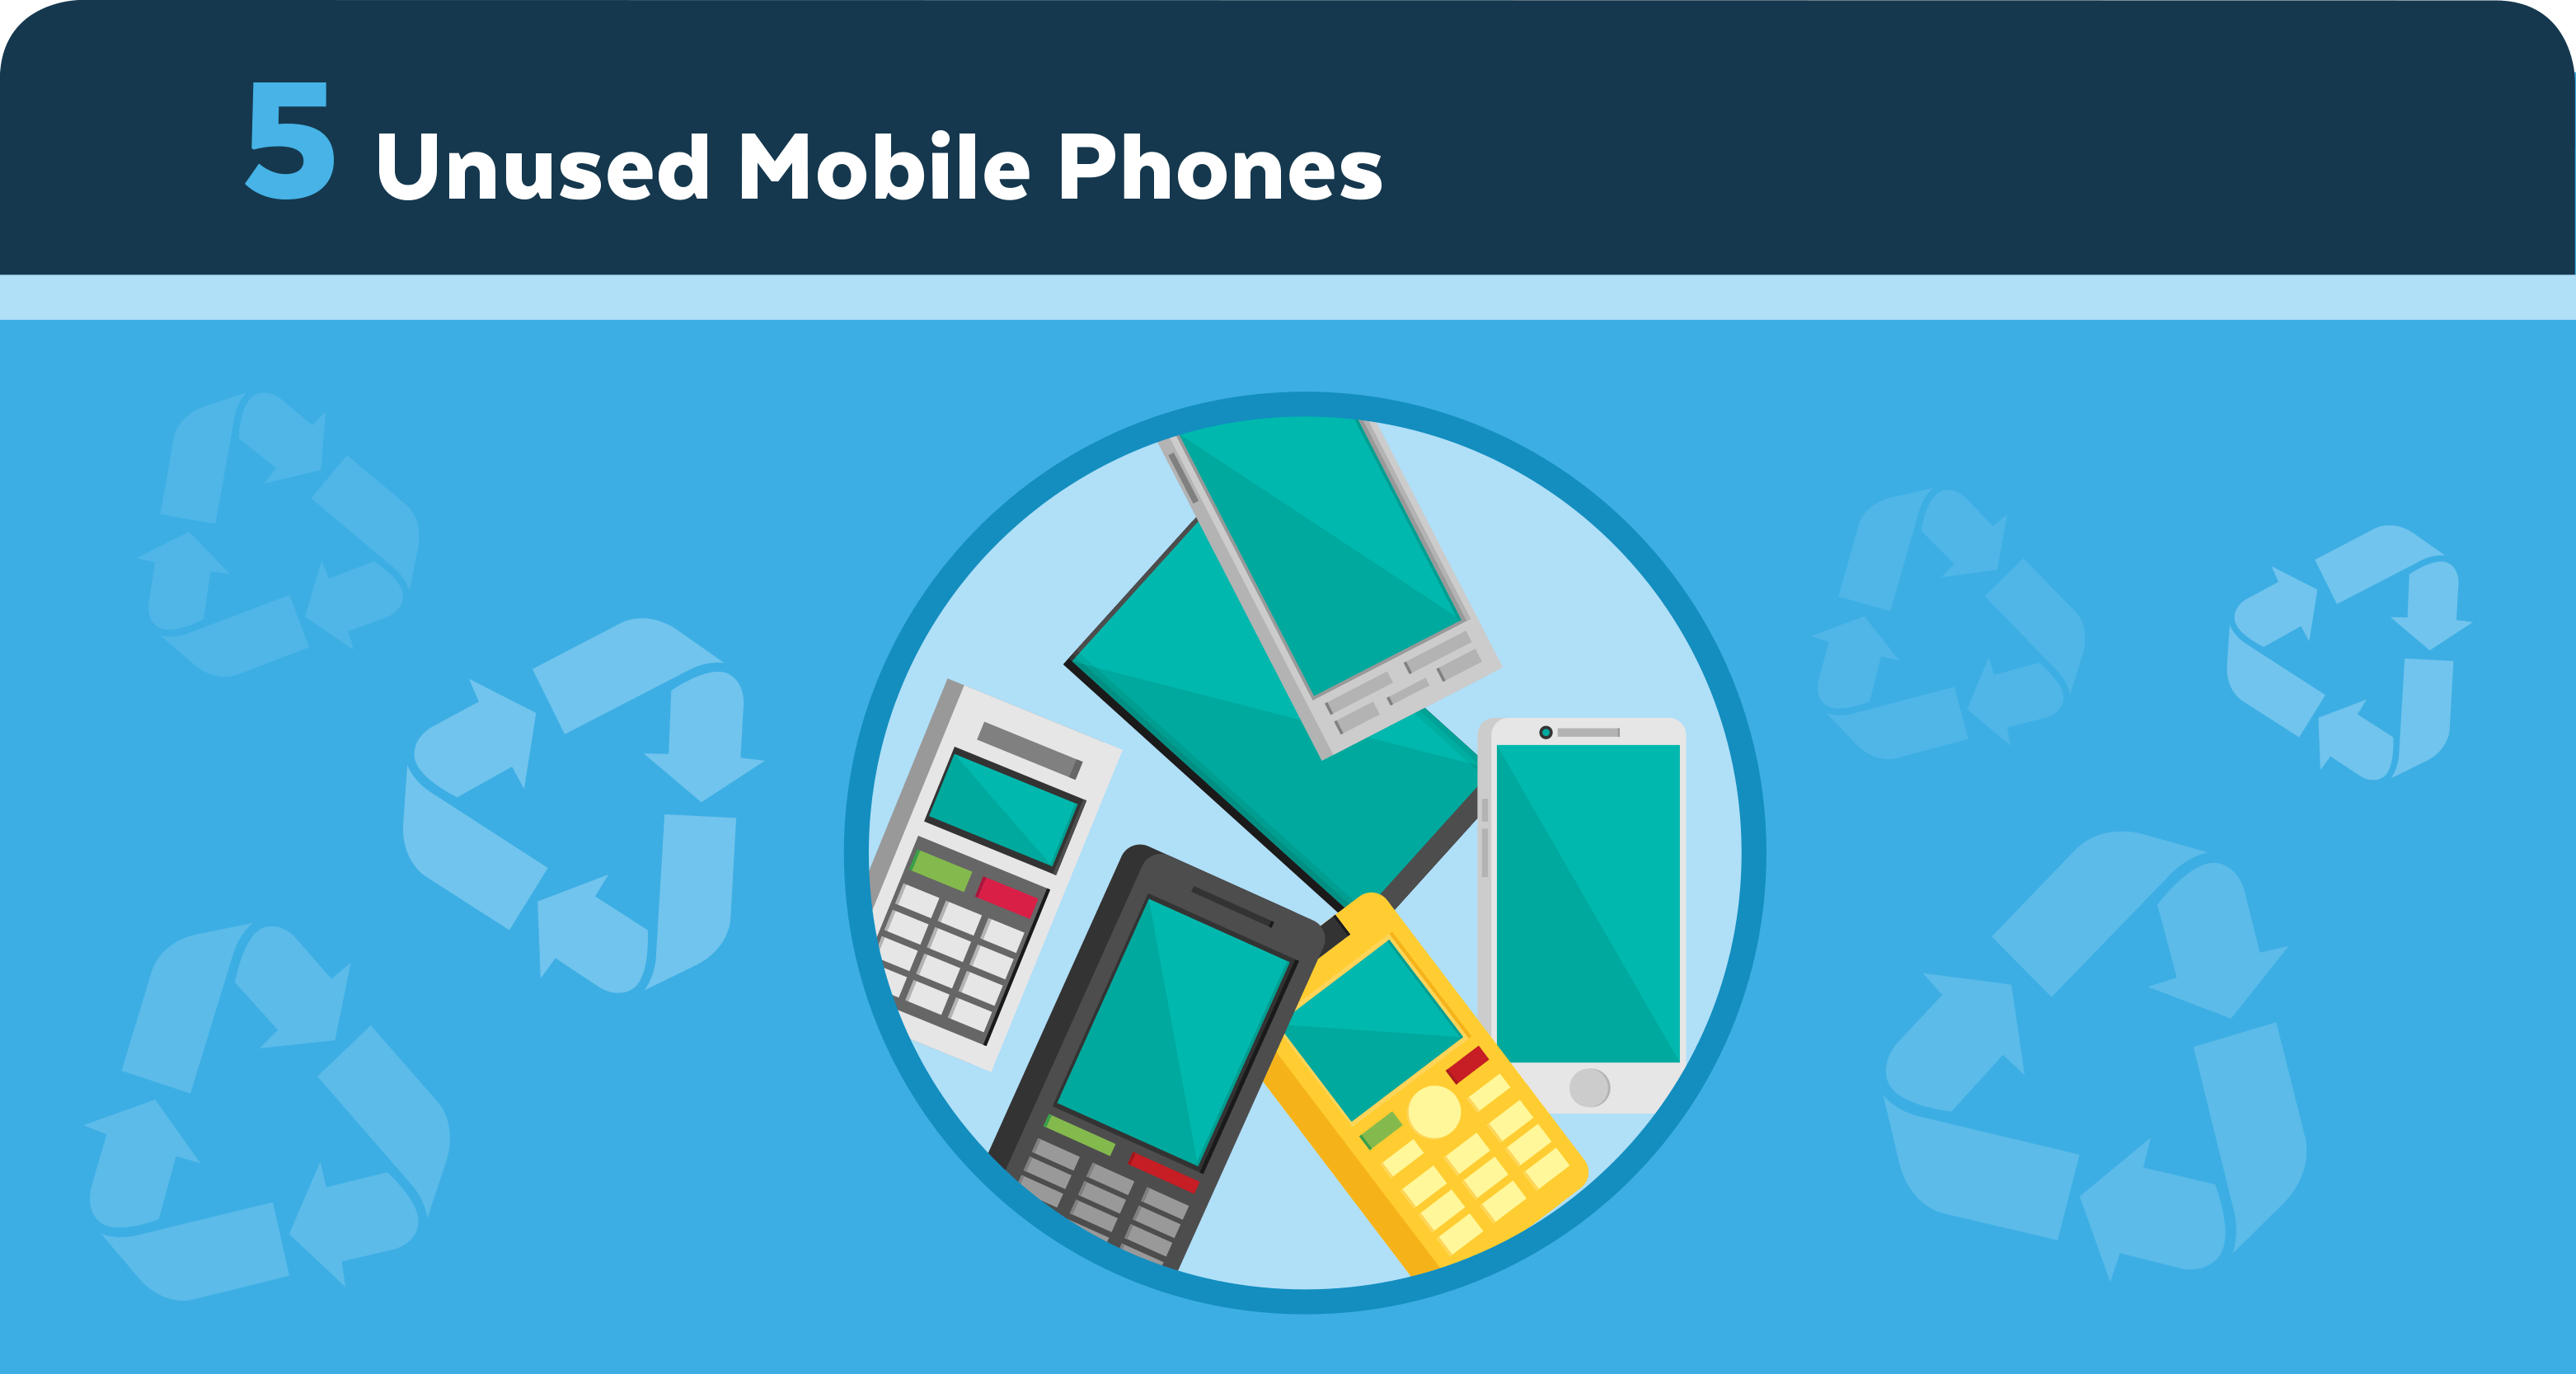 Unused Mobile Phones